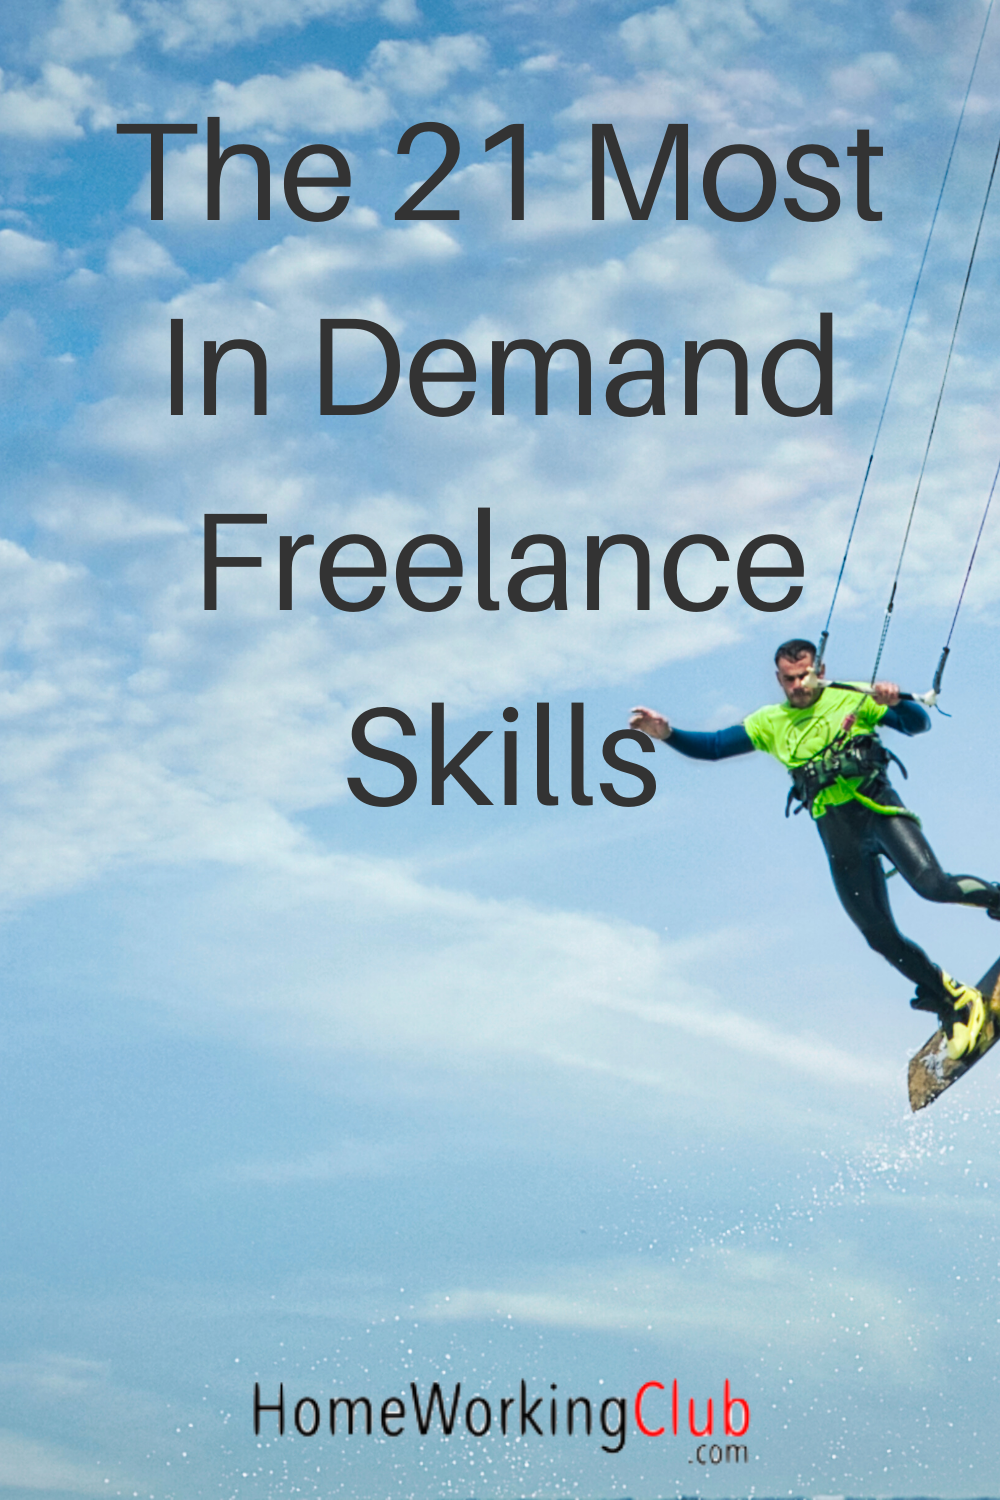 The 21 Best Freelance Skills For 2020 Homeworkingclub Com Skills Data Science Computer Aided Manufacturing